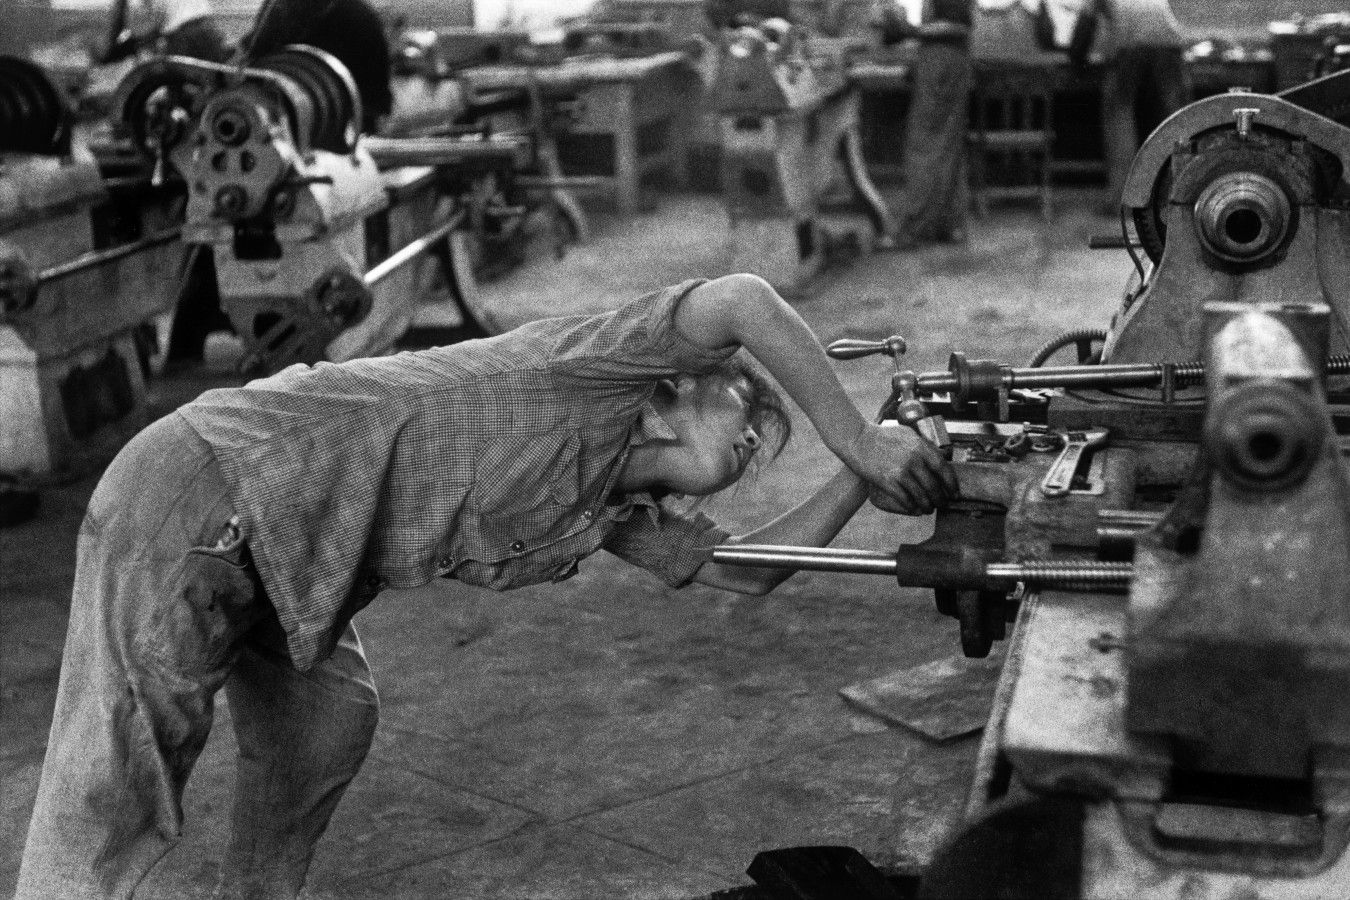 Henri Cartier-Bresson, The Great Leap Forward, China, 1958